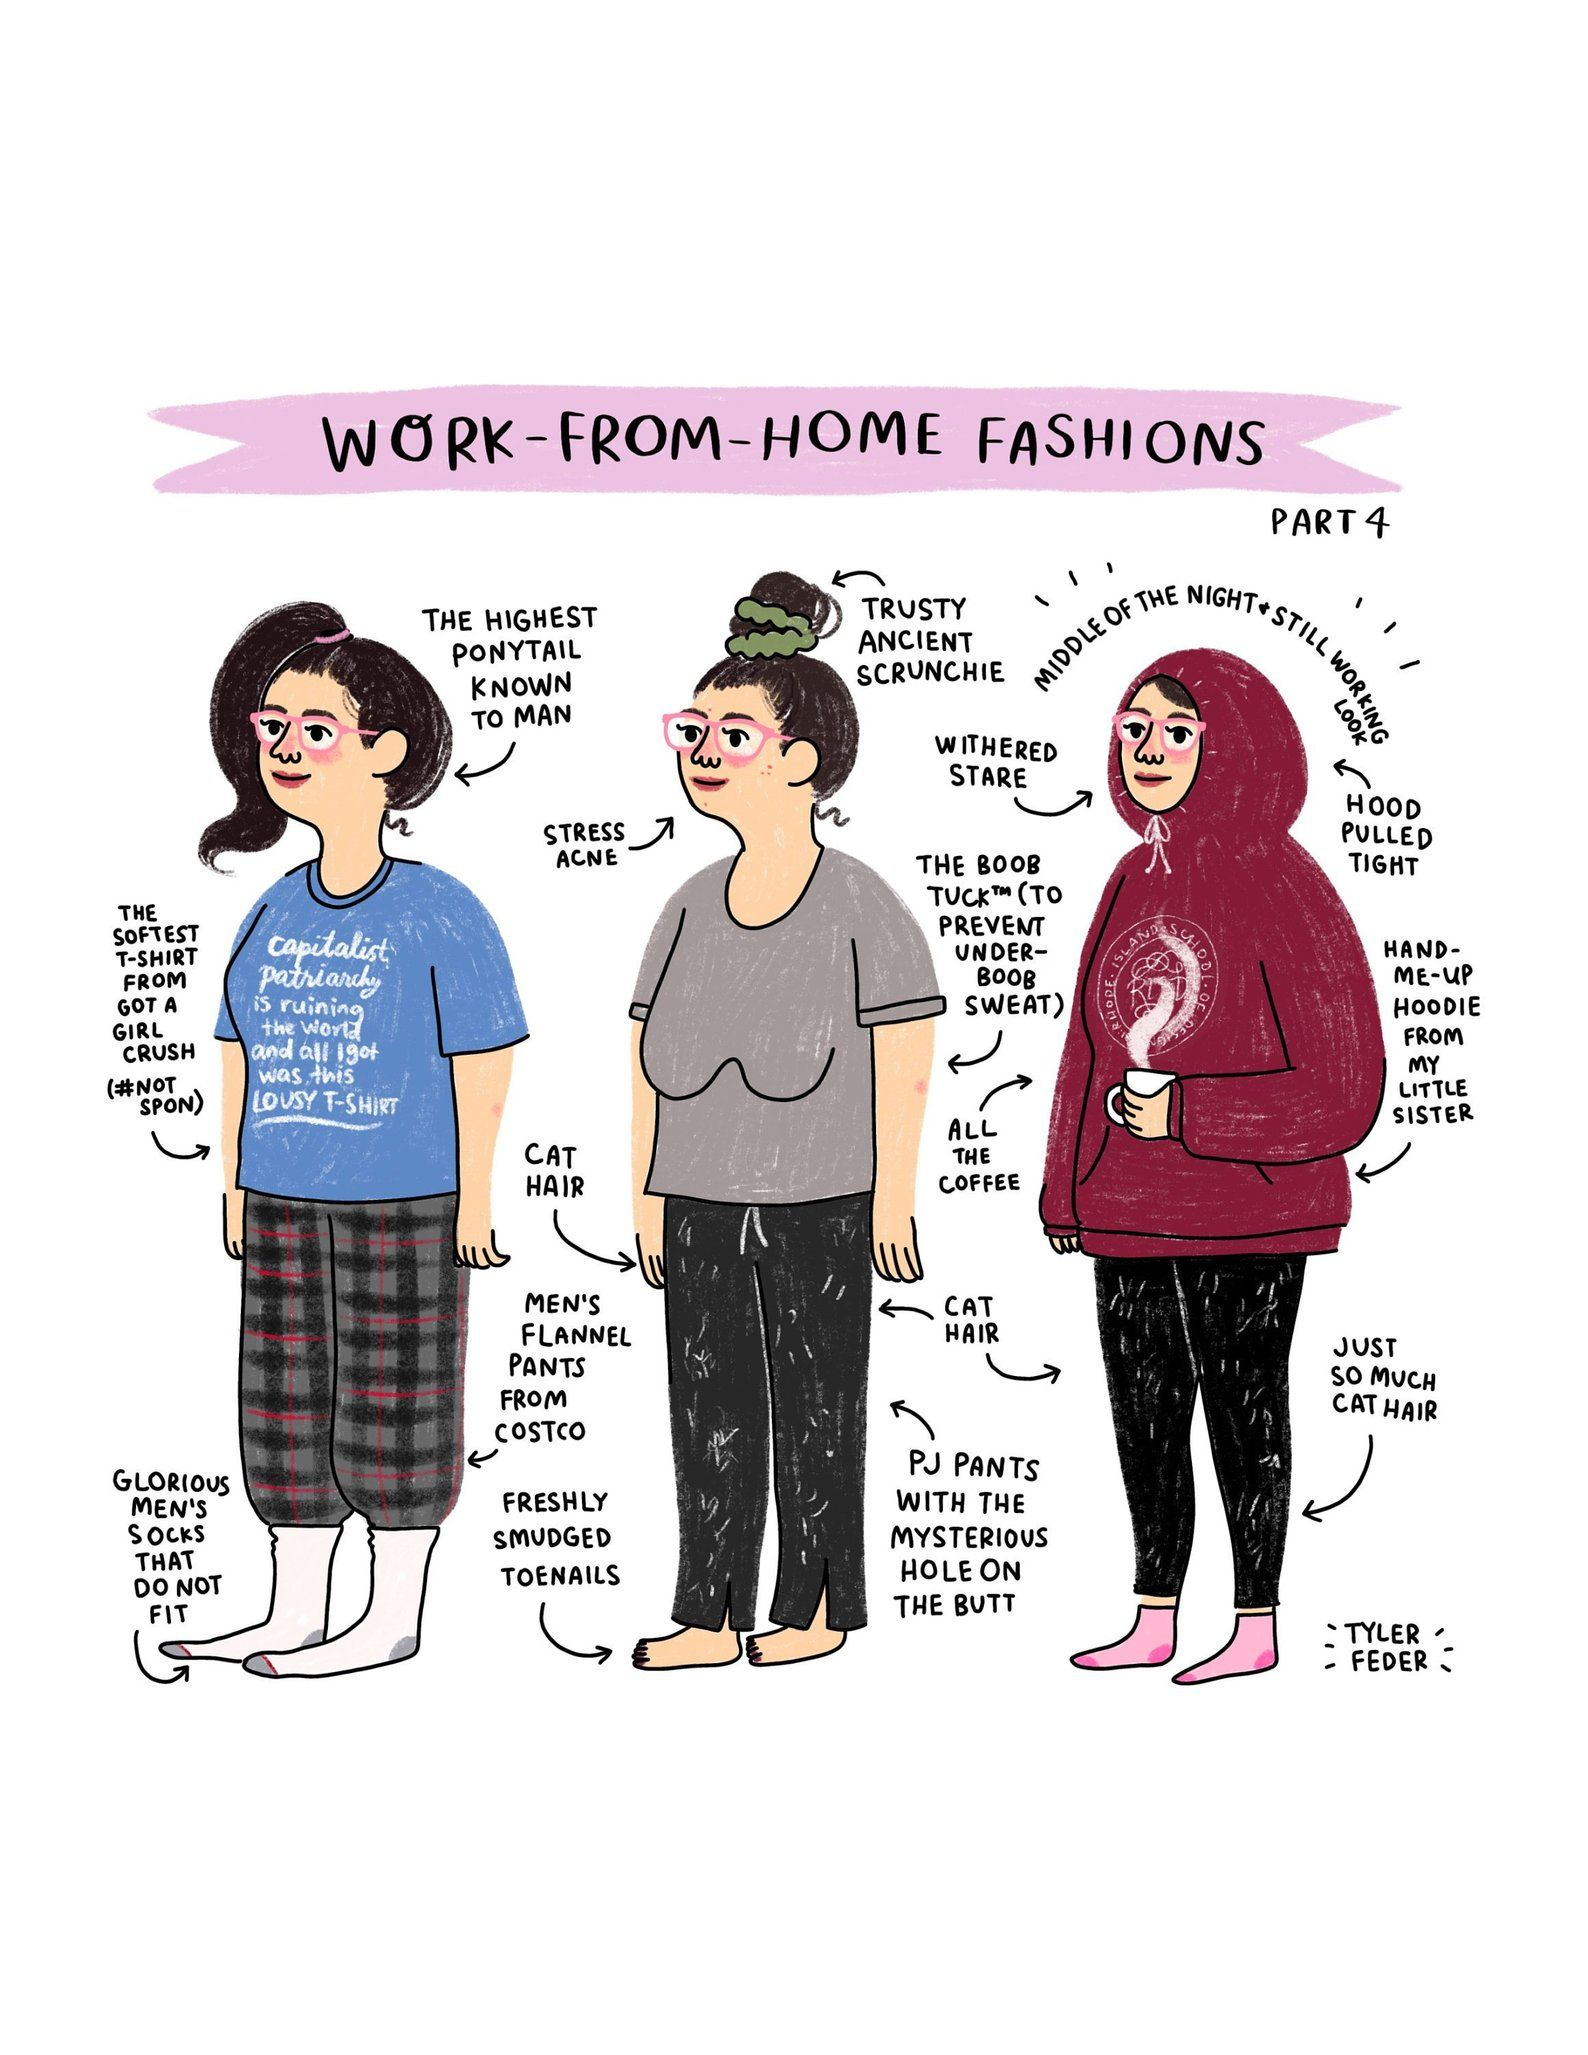 Work From Home Fashions Part 4 Print – Hand-Illustrated